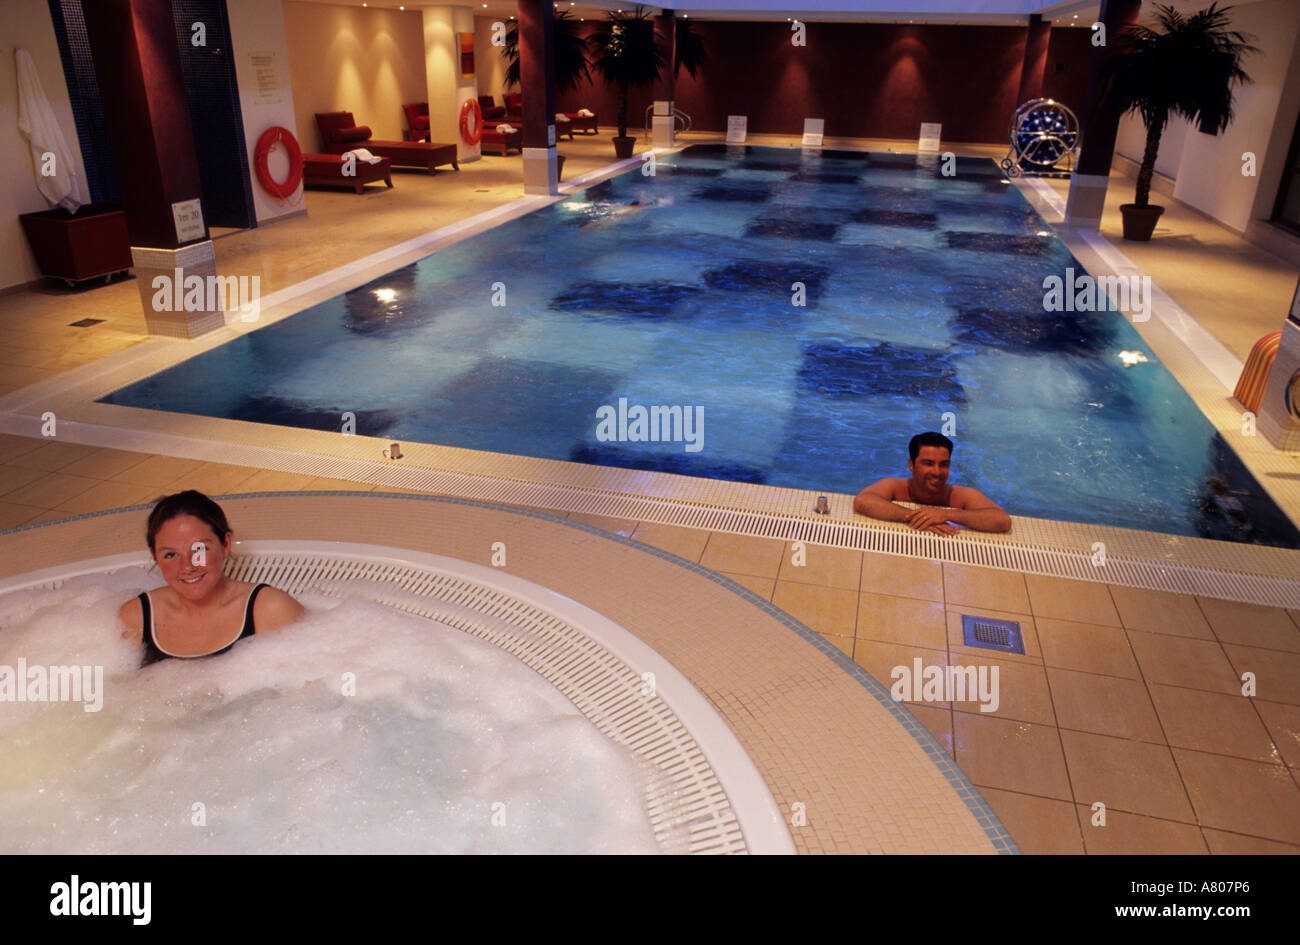 Belgium brussels champneys swimming pool luxurious - Hotels in bath with swimming pool ...